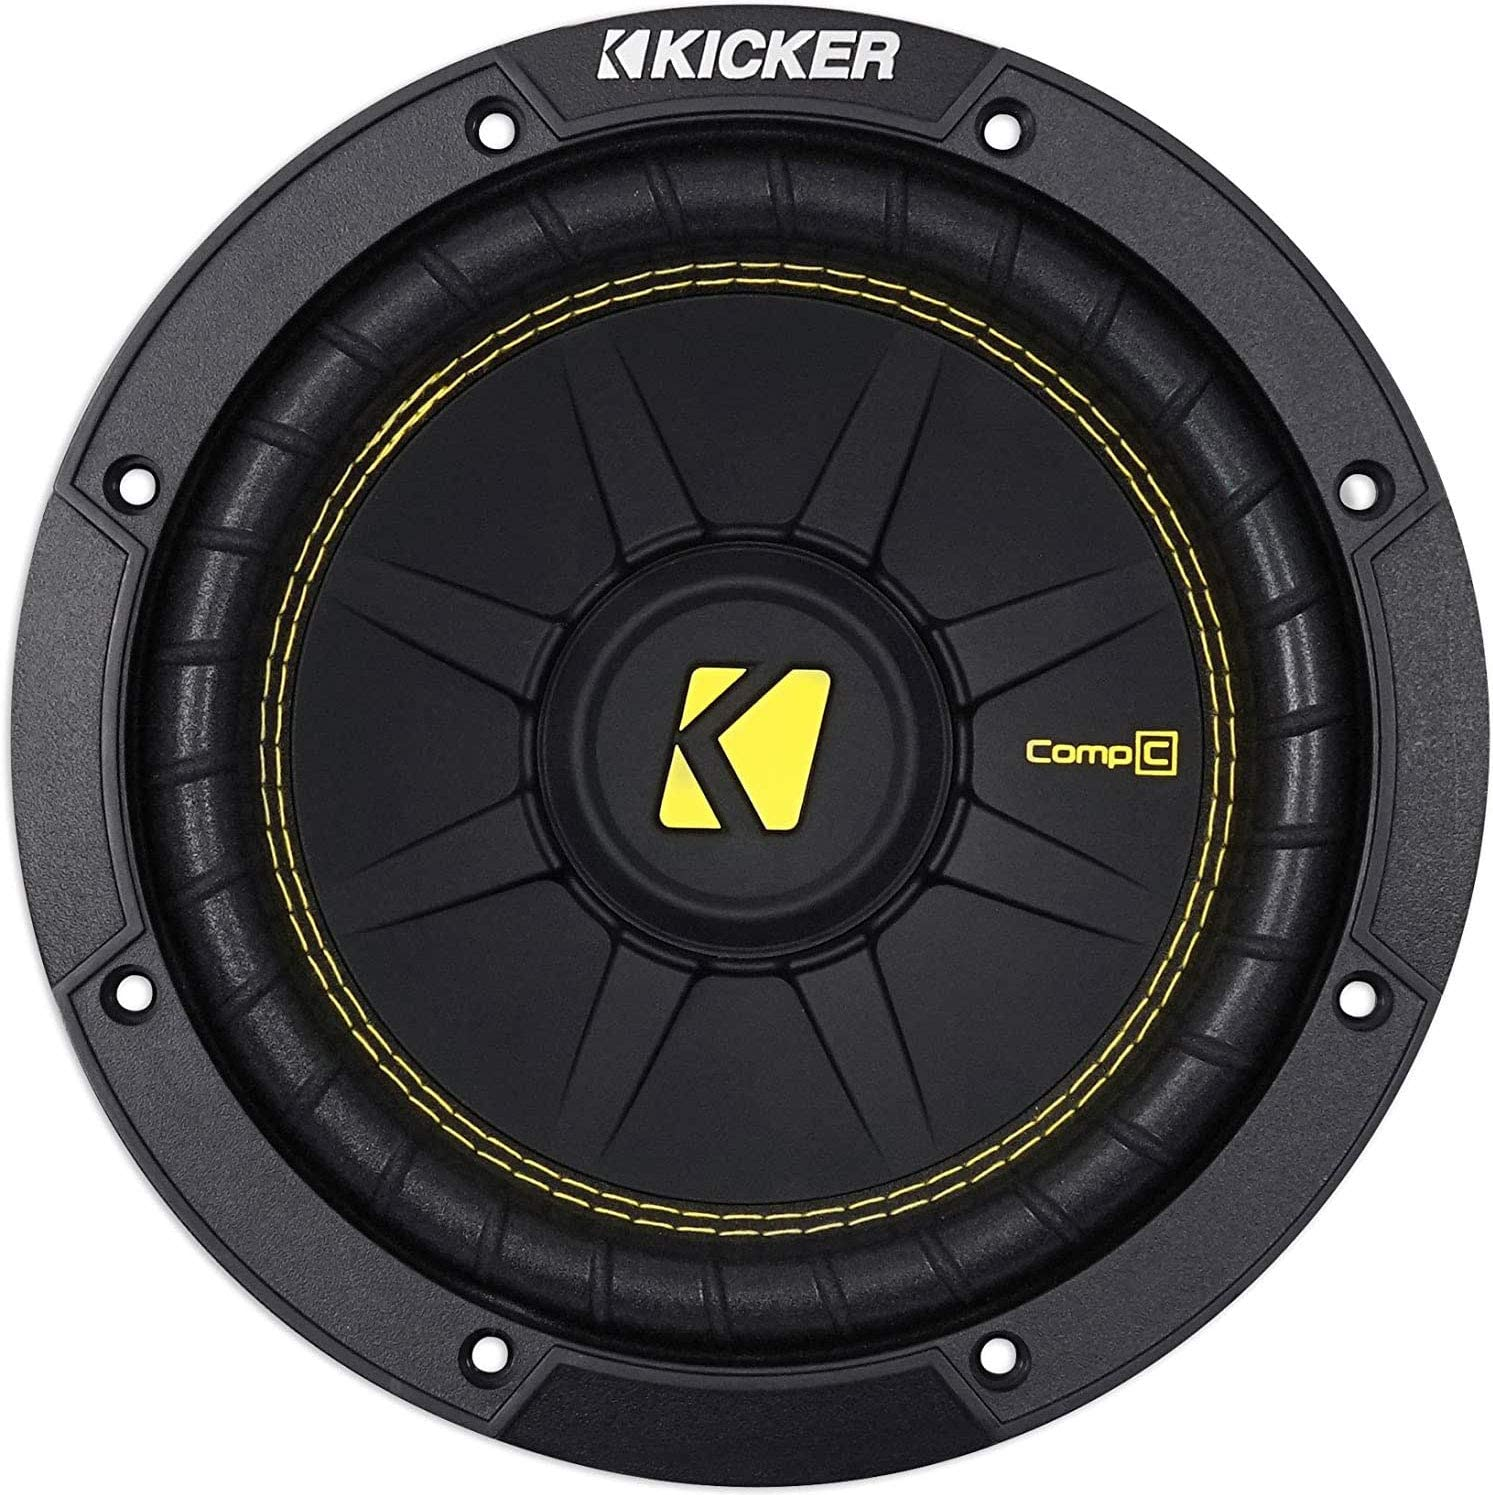 Kicker 44CWCD84 CompC 8 Inch 4 Ohm 200 Watt RMS Power and 400 Watts Peak Power Dual Voice Coil Car Audio Sub Subwoofer